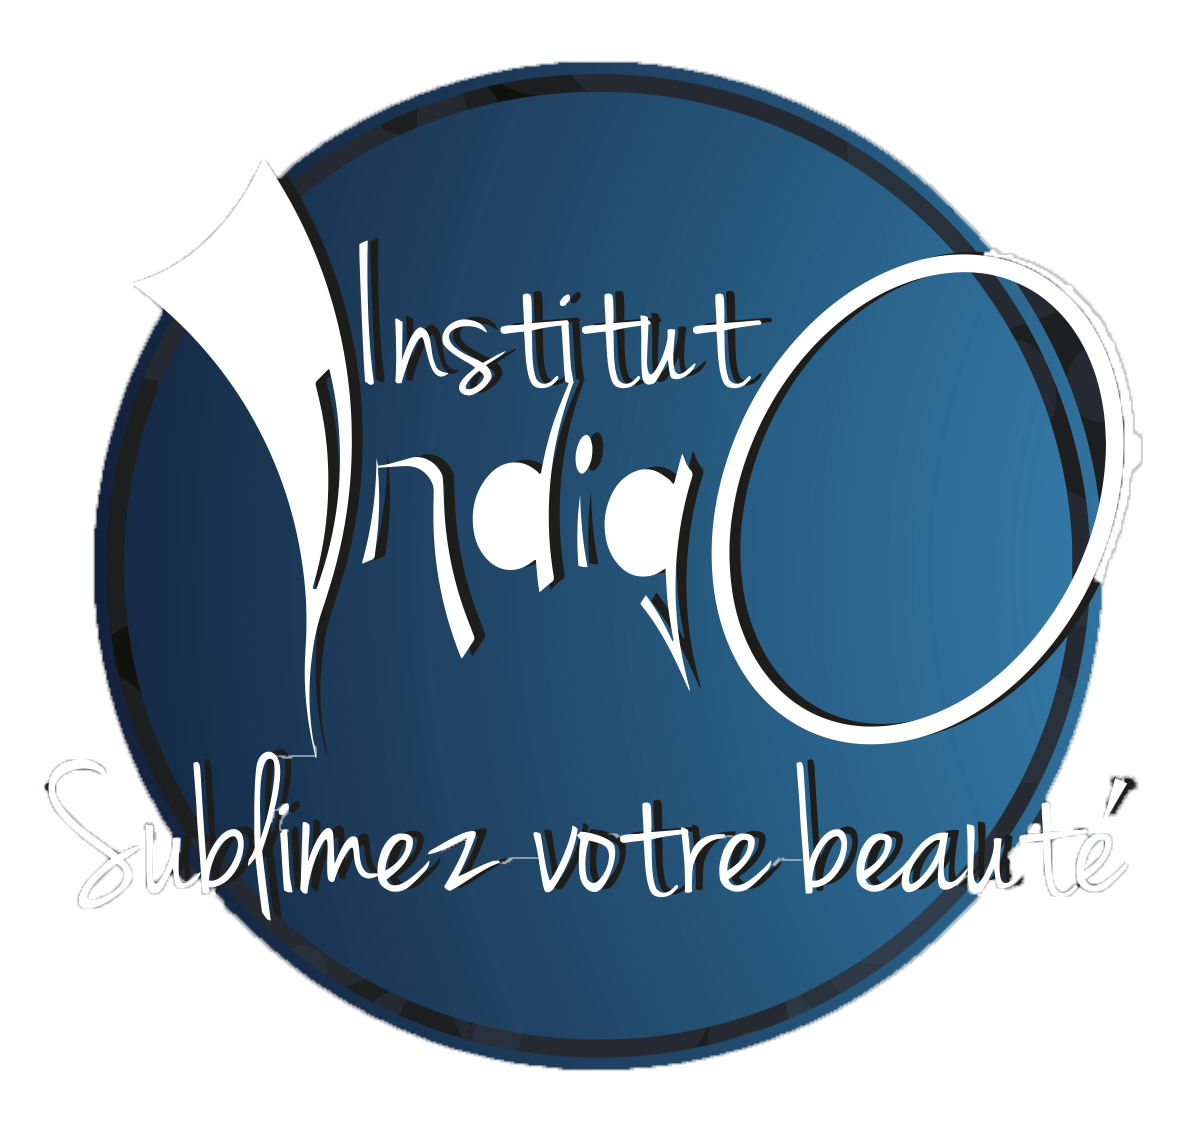 Beauty and well-being center - nail modeling center - slimming center - podiatry center - Thalgo center - Candice Ory - Esthetician Liège - www.institutindigo.com